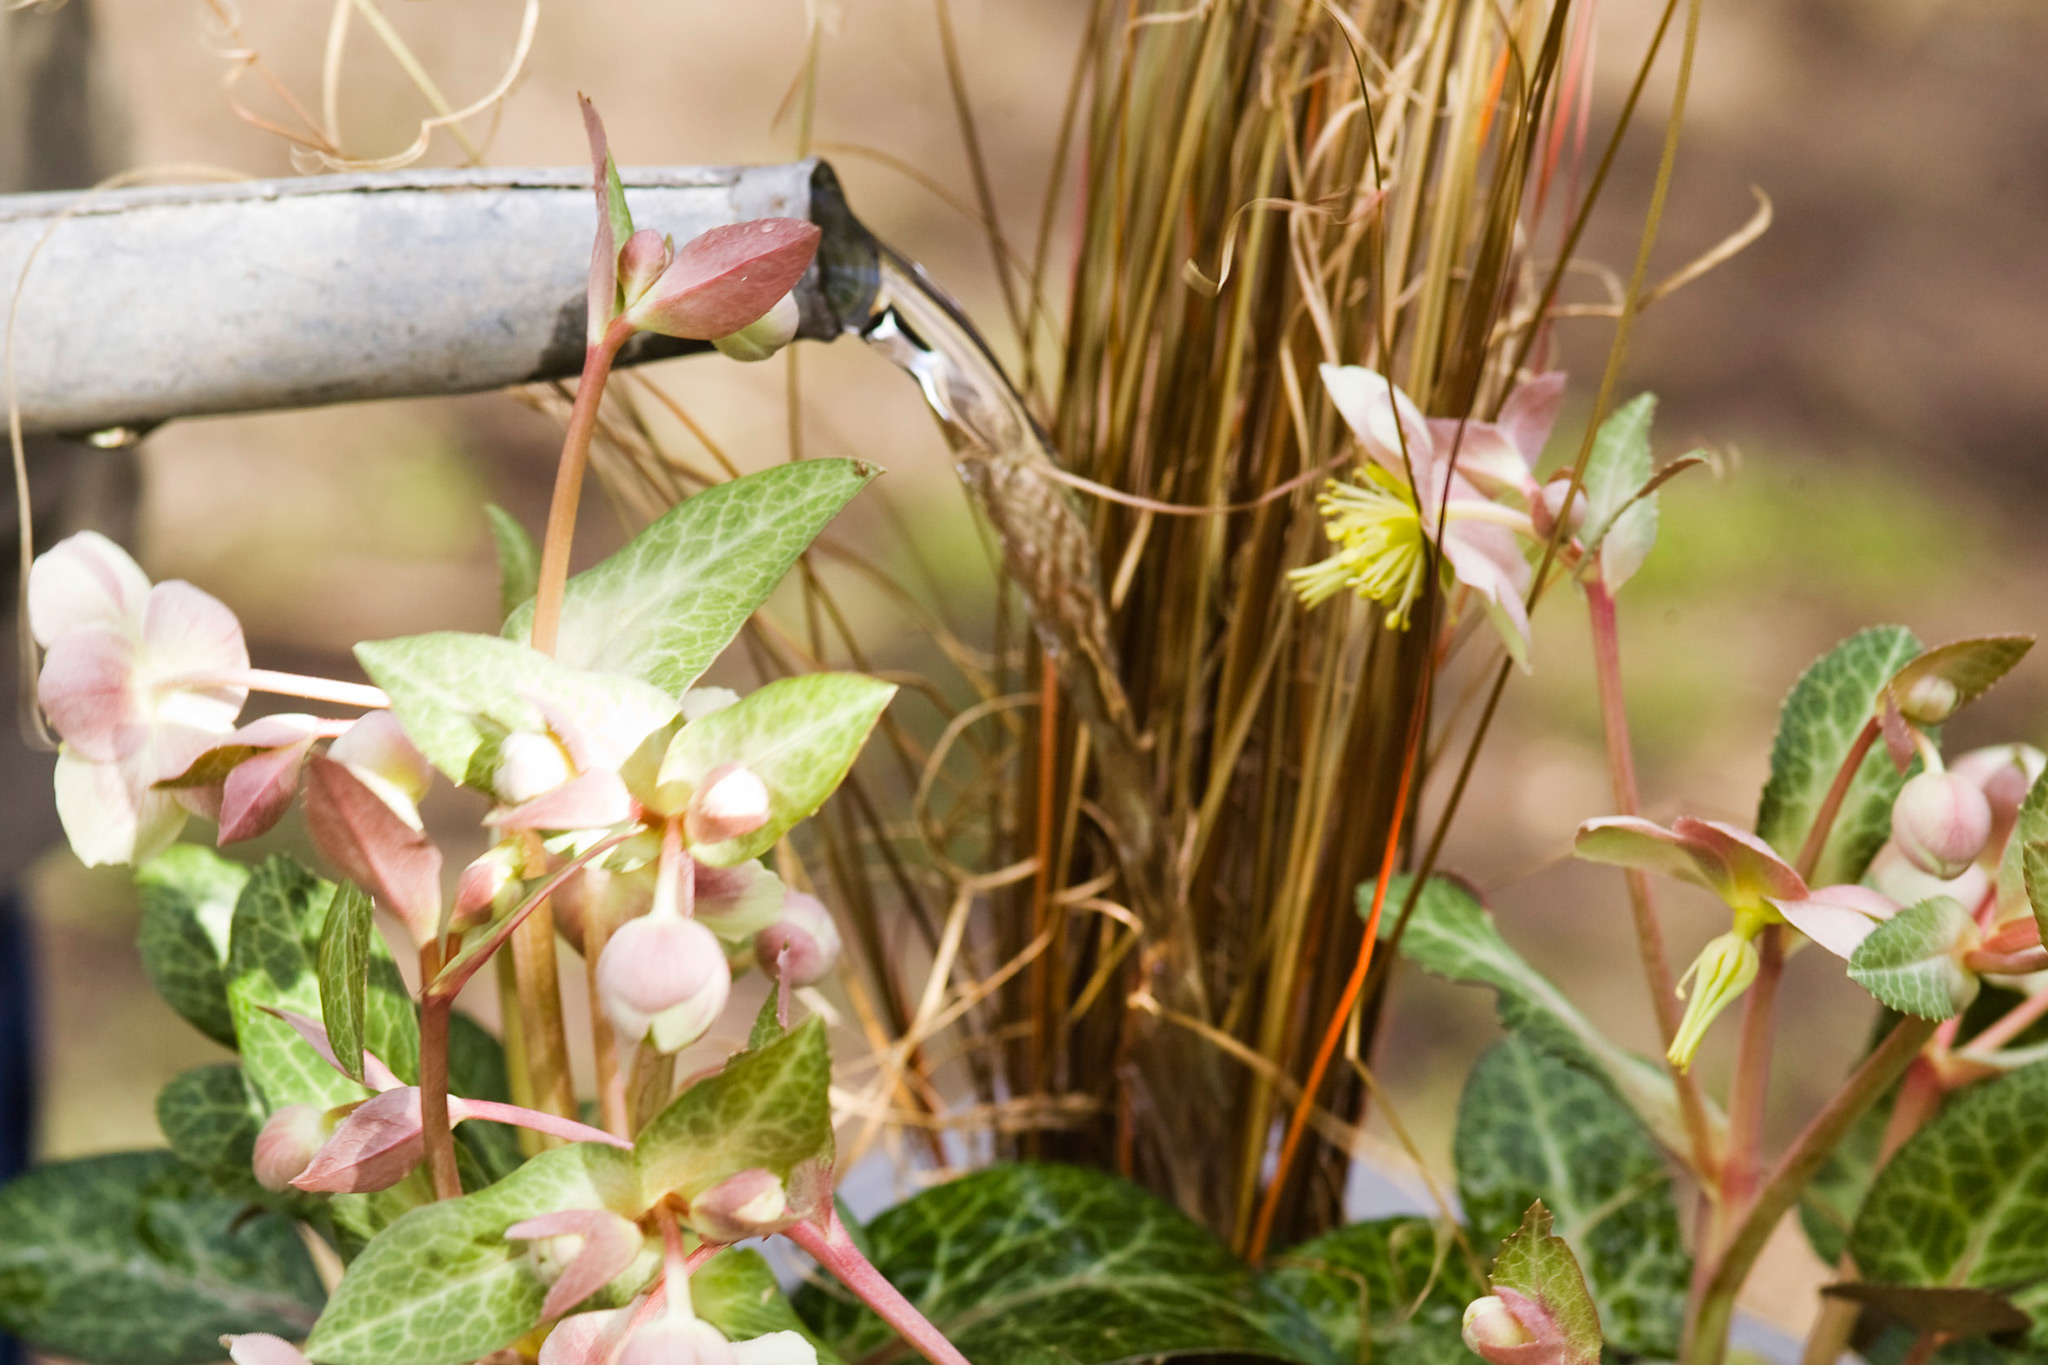 watering-the-hellebore-and-carex-pot-display-2